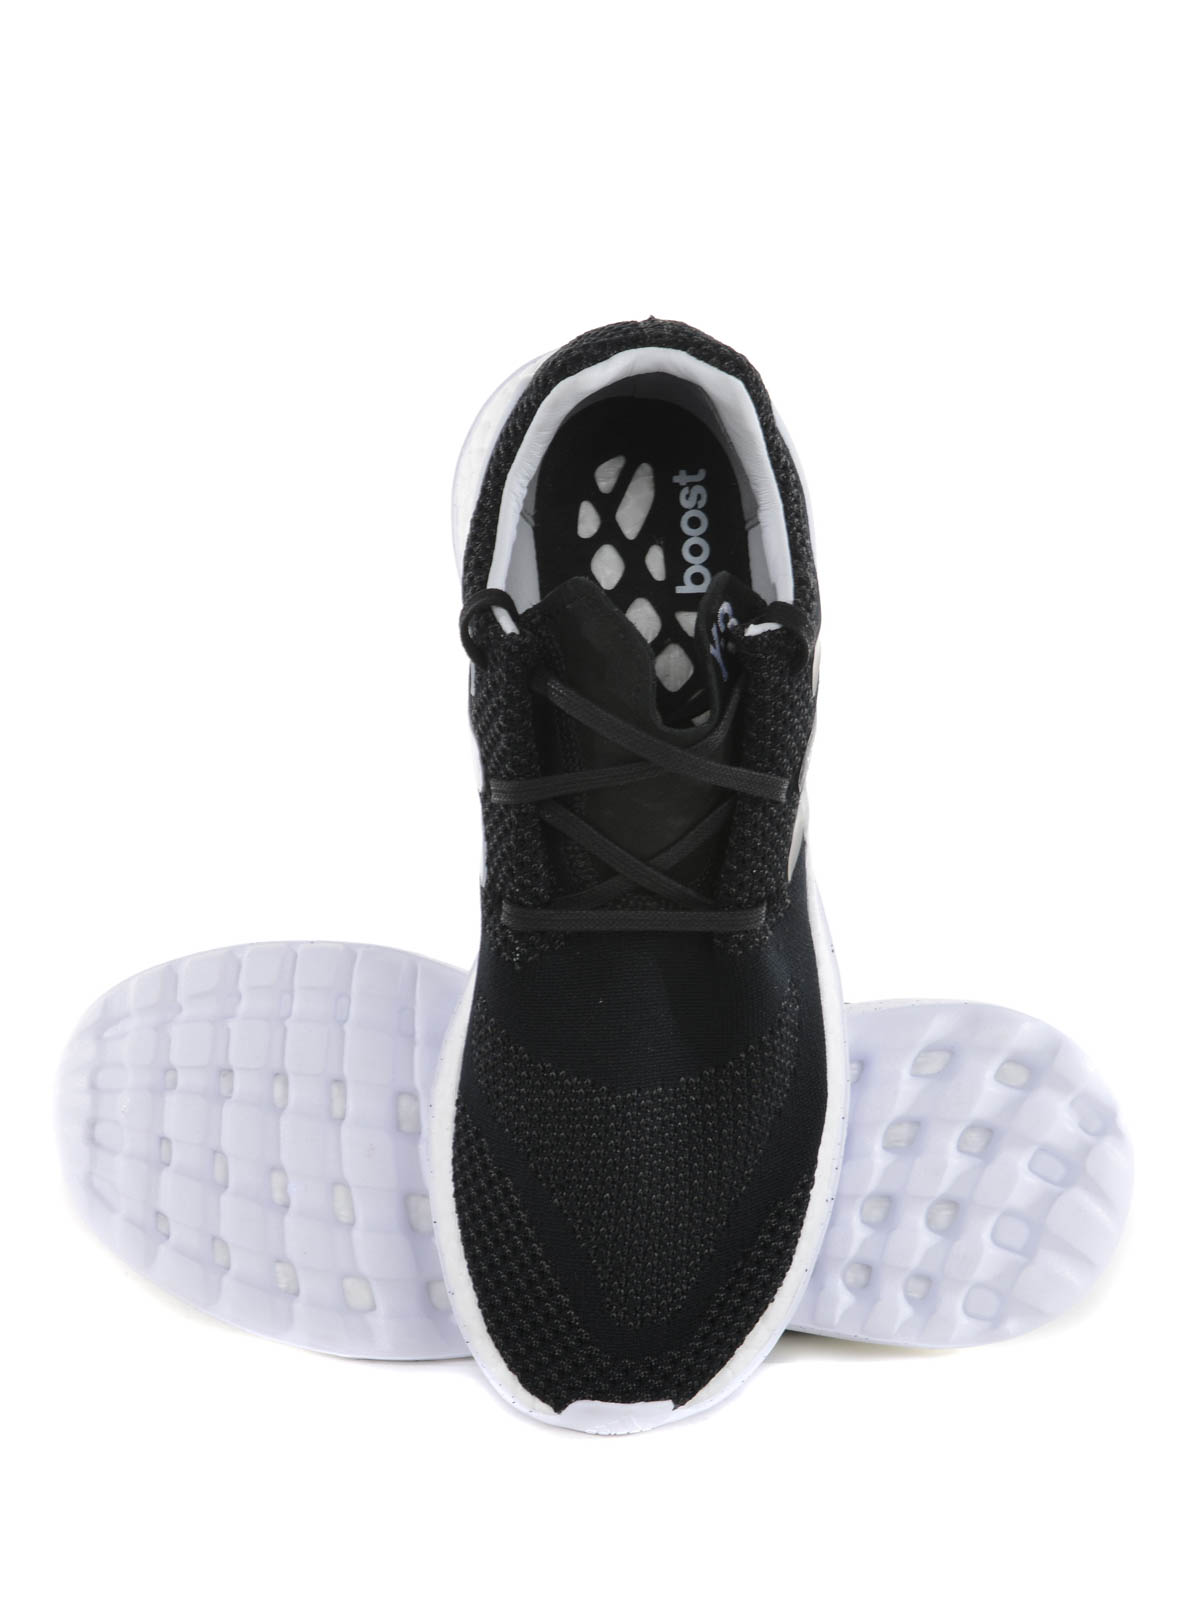 online retailer 39a7f 30dc8 ADIDAS Y-3 buy online Sneaker Pure Boost ZG Knit